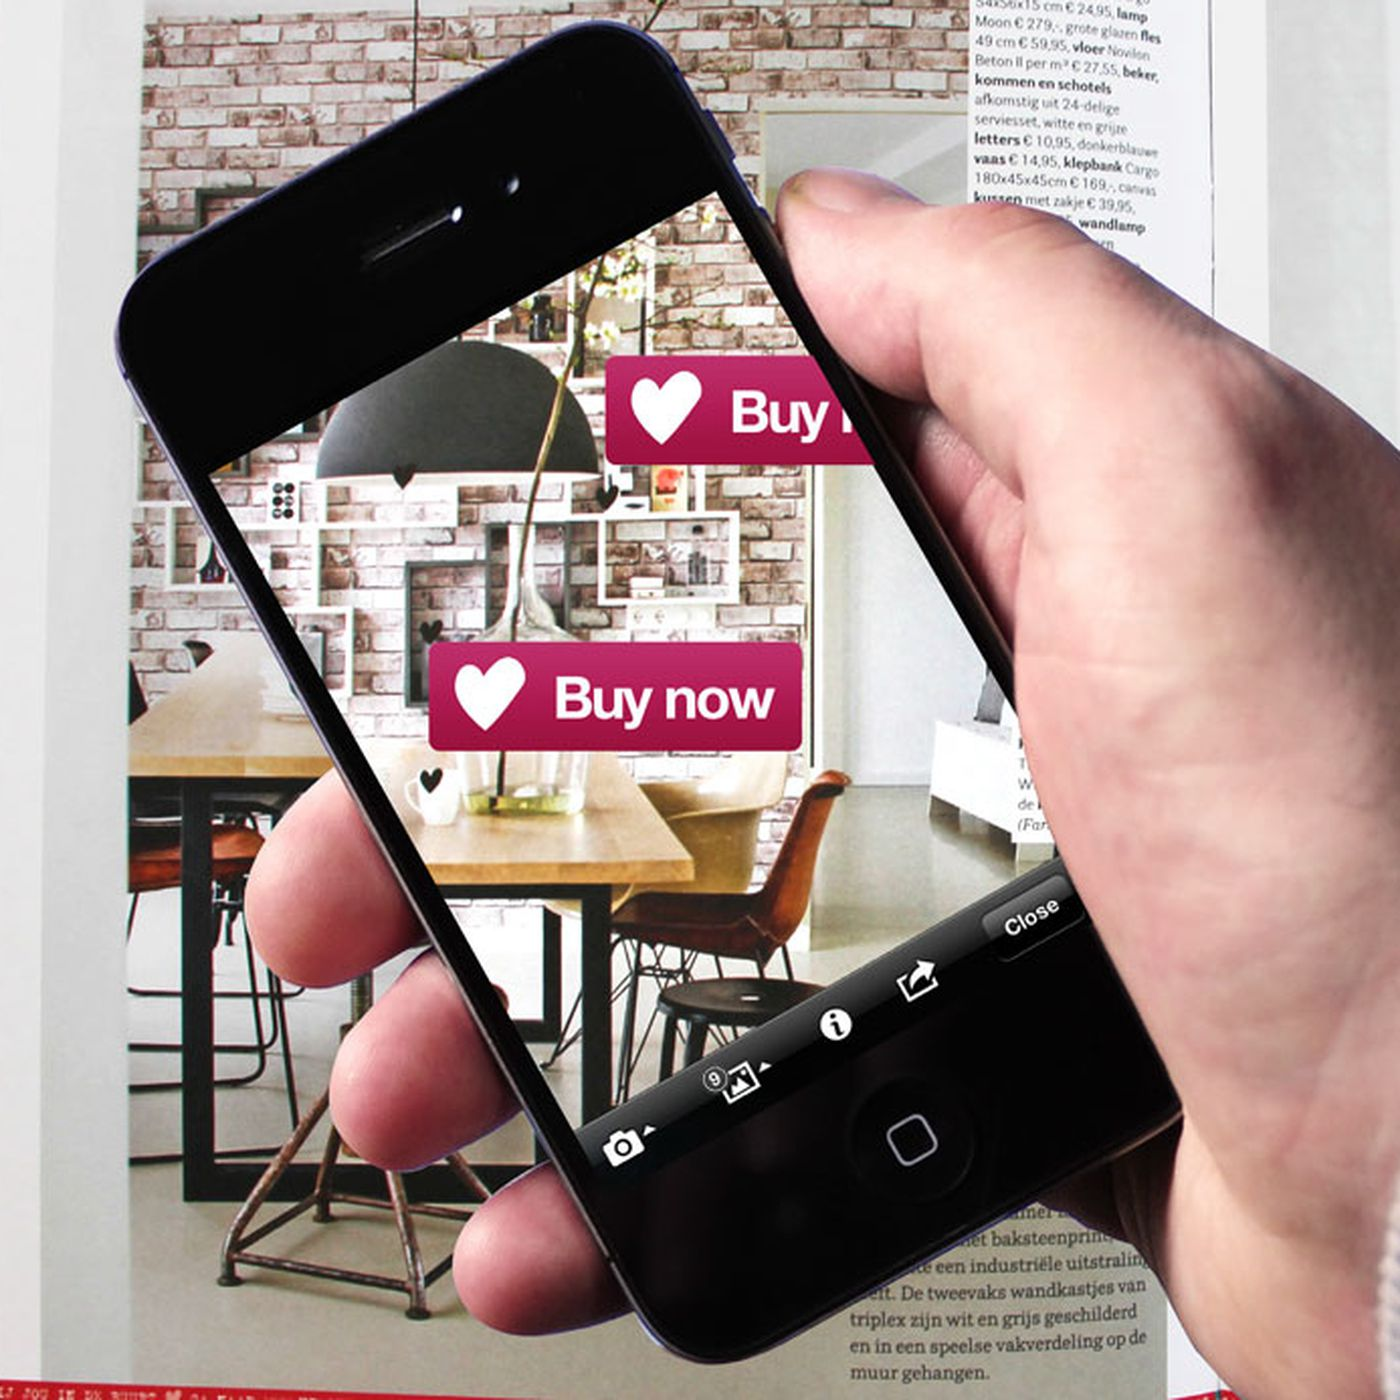 Energy Plus Kussen.Layar Creator Brings Interactive Augmented Reality To Print Media